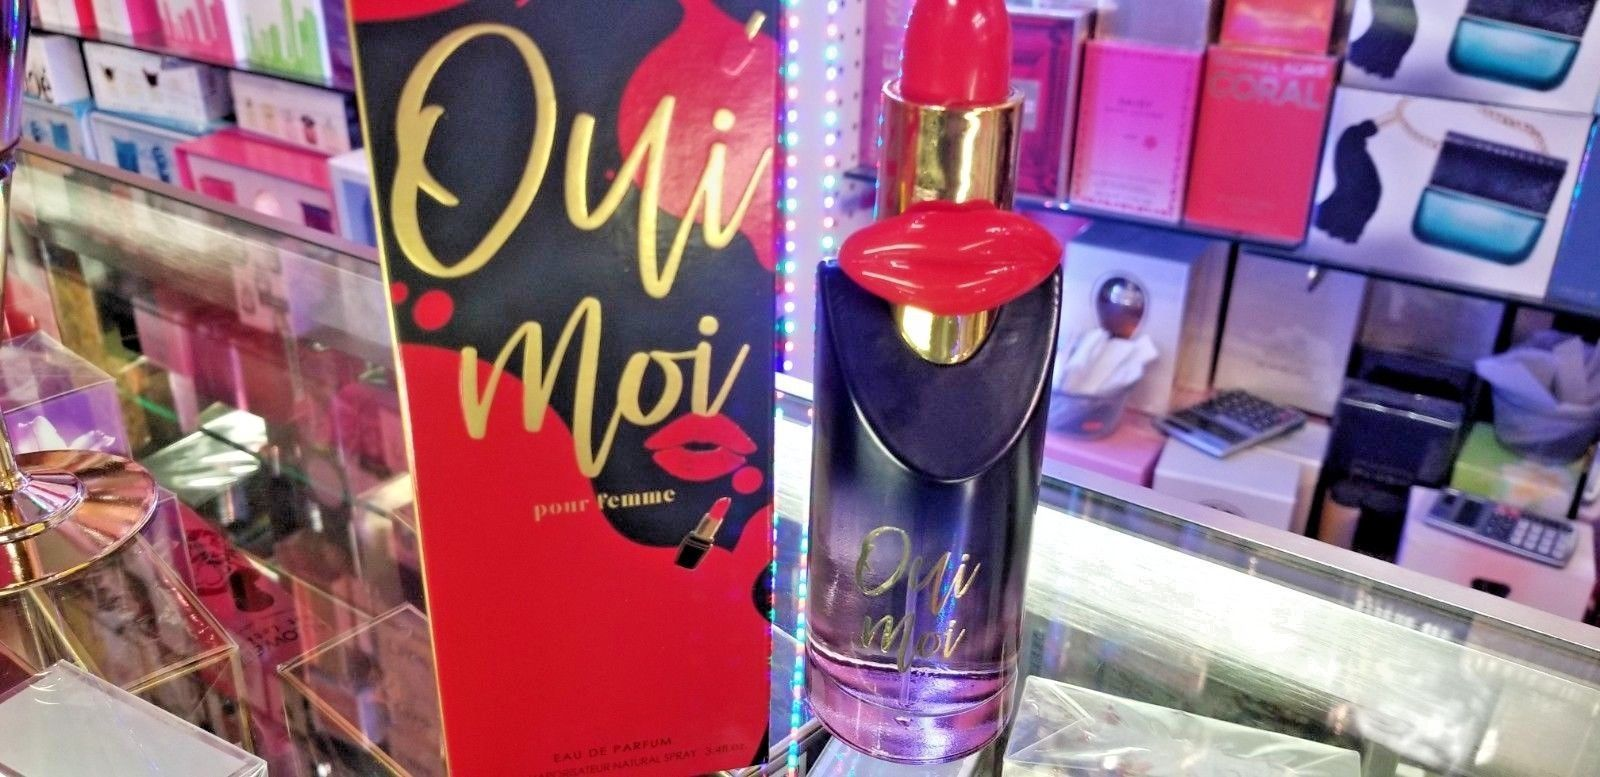 8e1facf9c2 Oui Moi Pour Femme by Mirage Brands 100 ml and 50 similar items